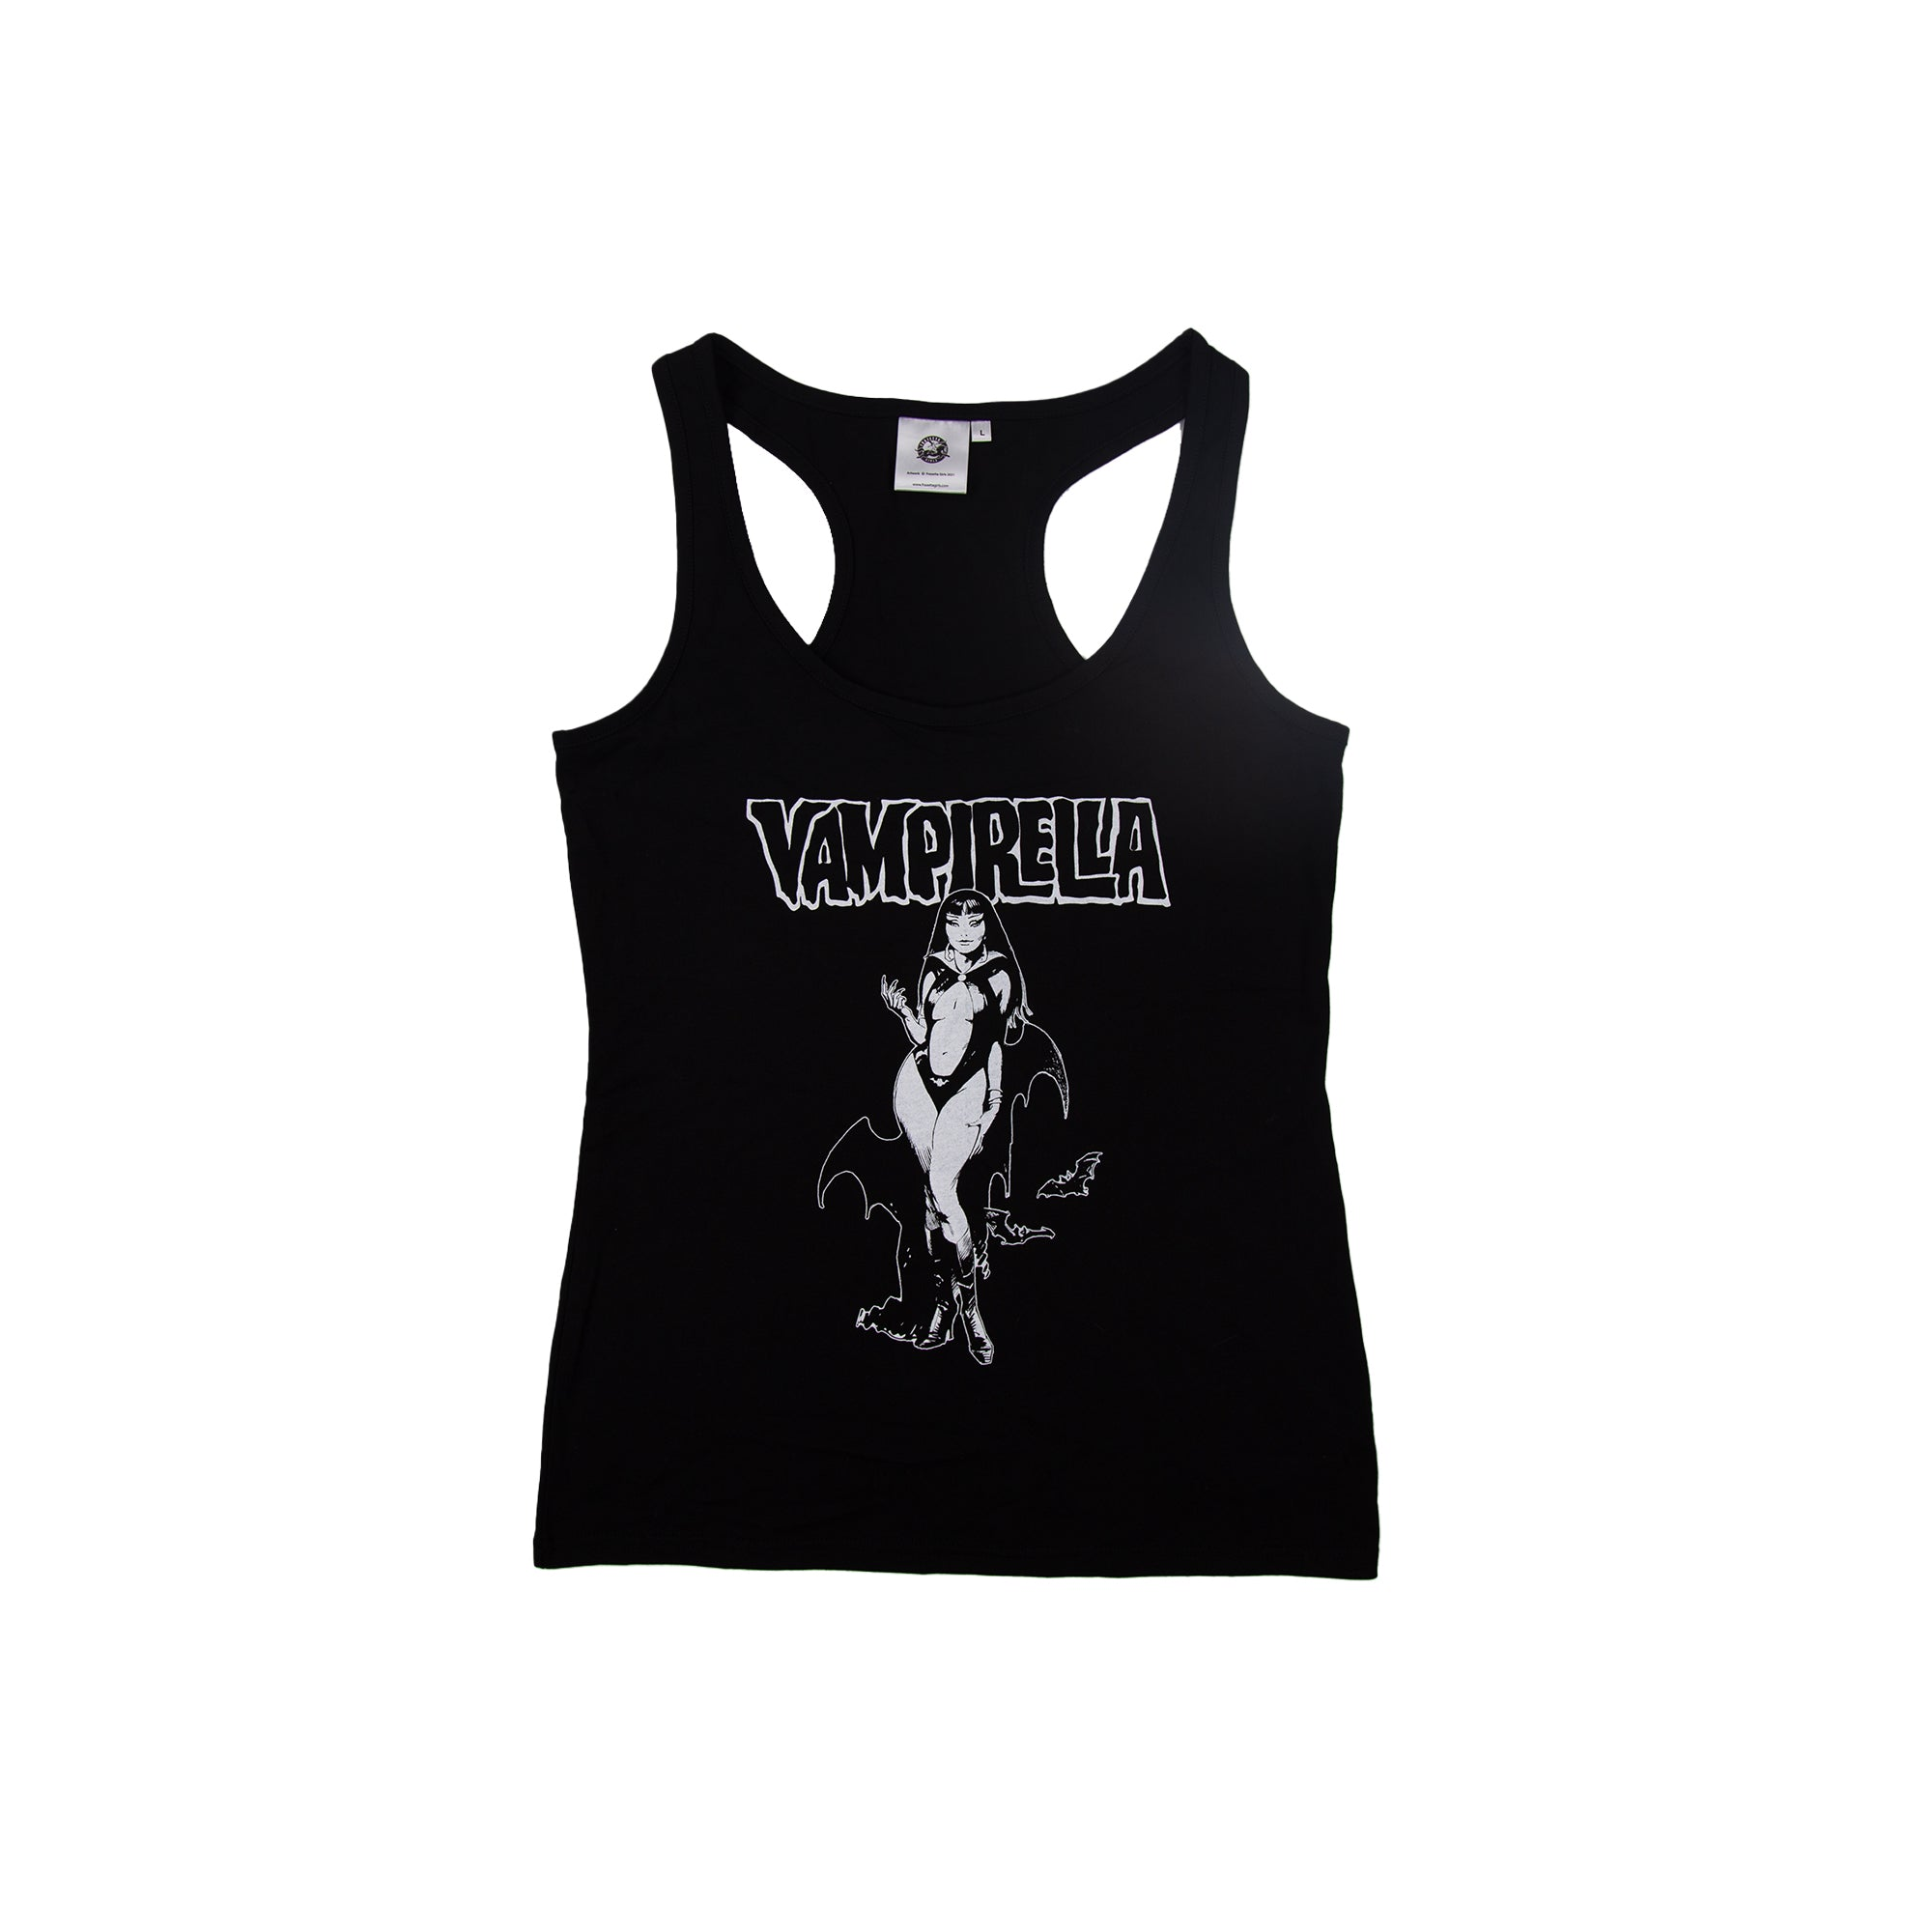 "Winter of the Coup 3"" Enamel Pin"